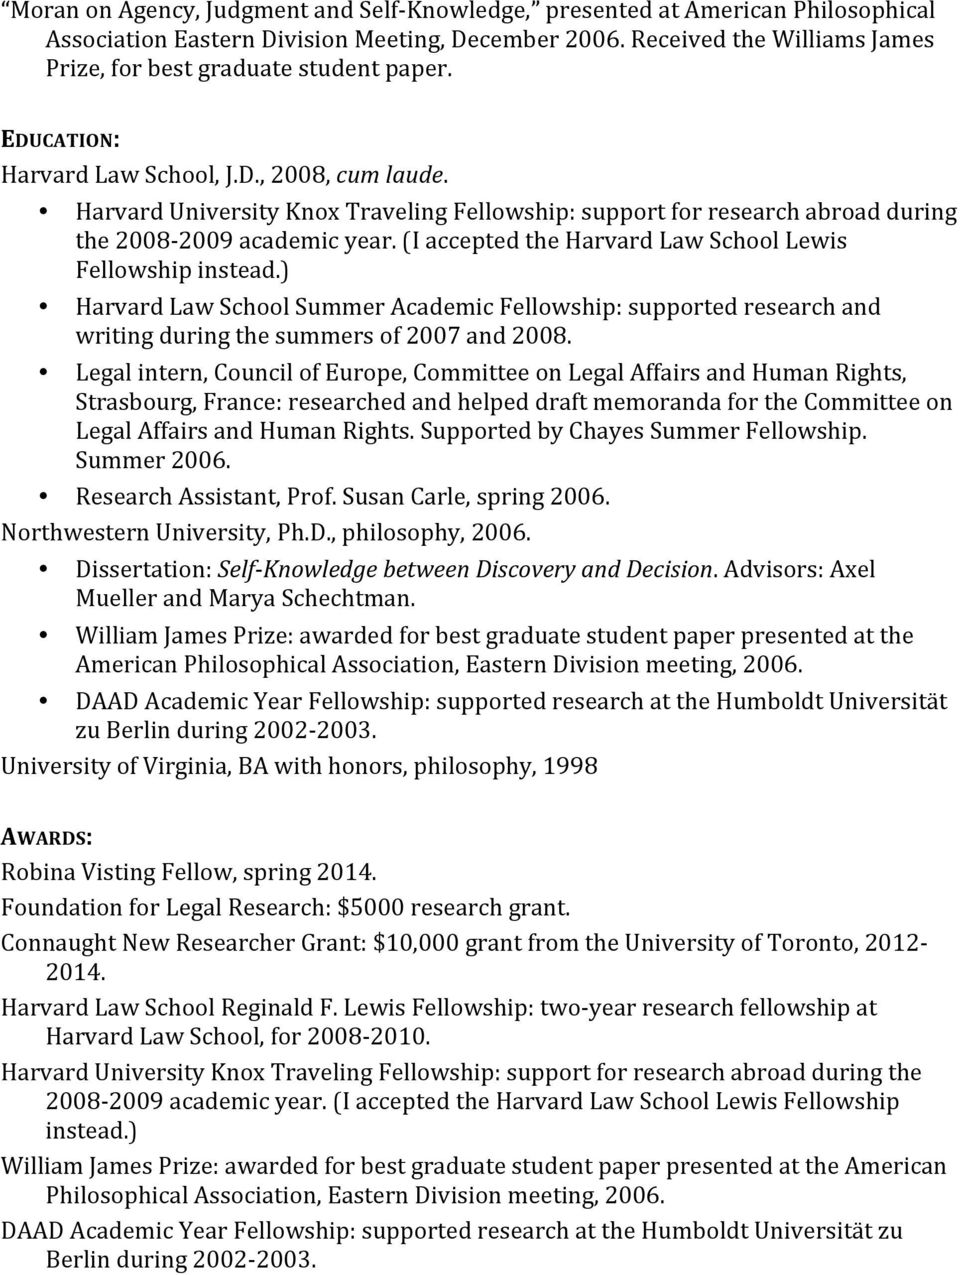 Harvard University Knox Traveling Fellowship: support for research abroad during the 2008-2009 academic year. (I accepted the Harvard Law School Lewis Fellowship instead.